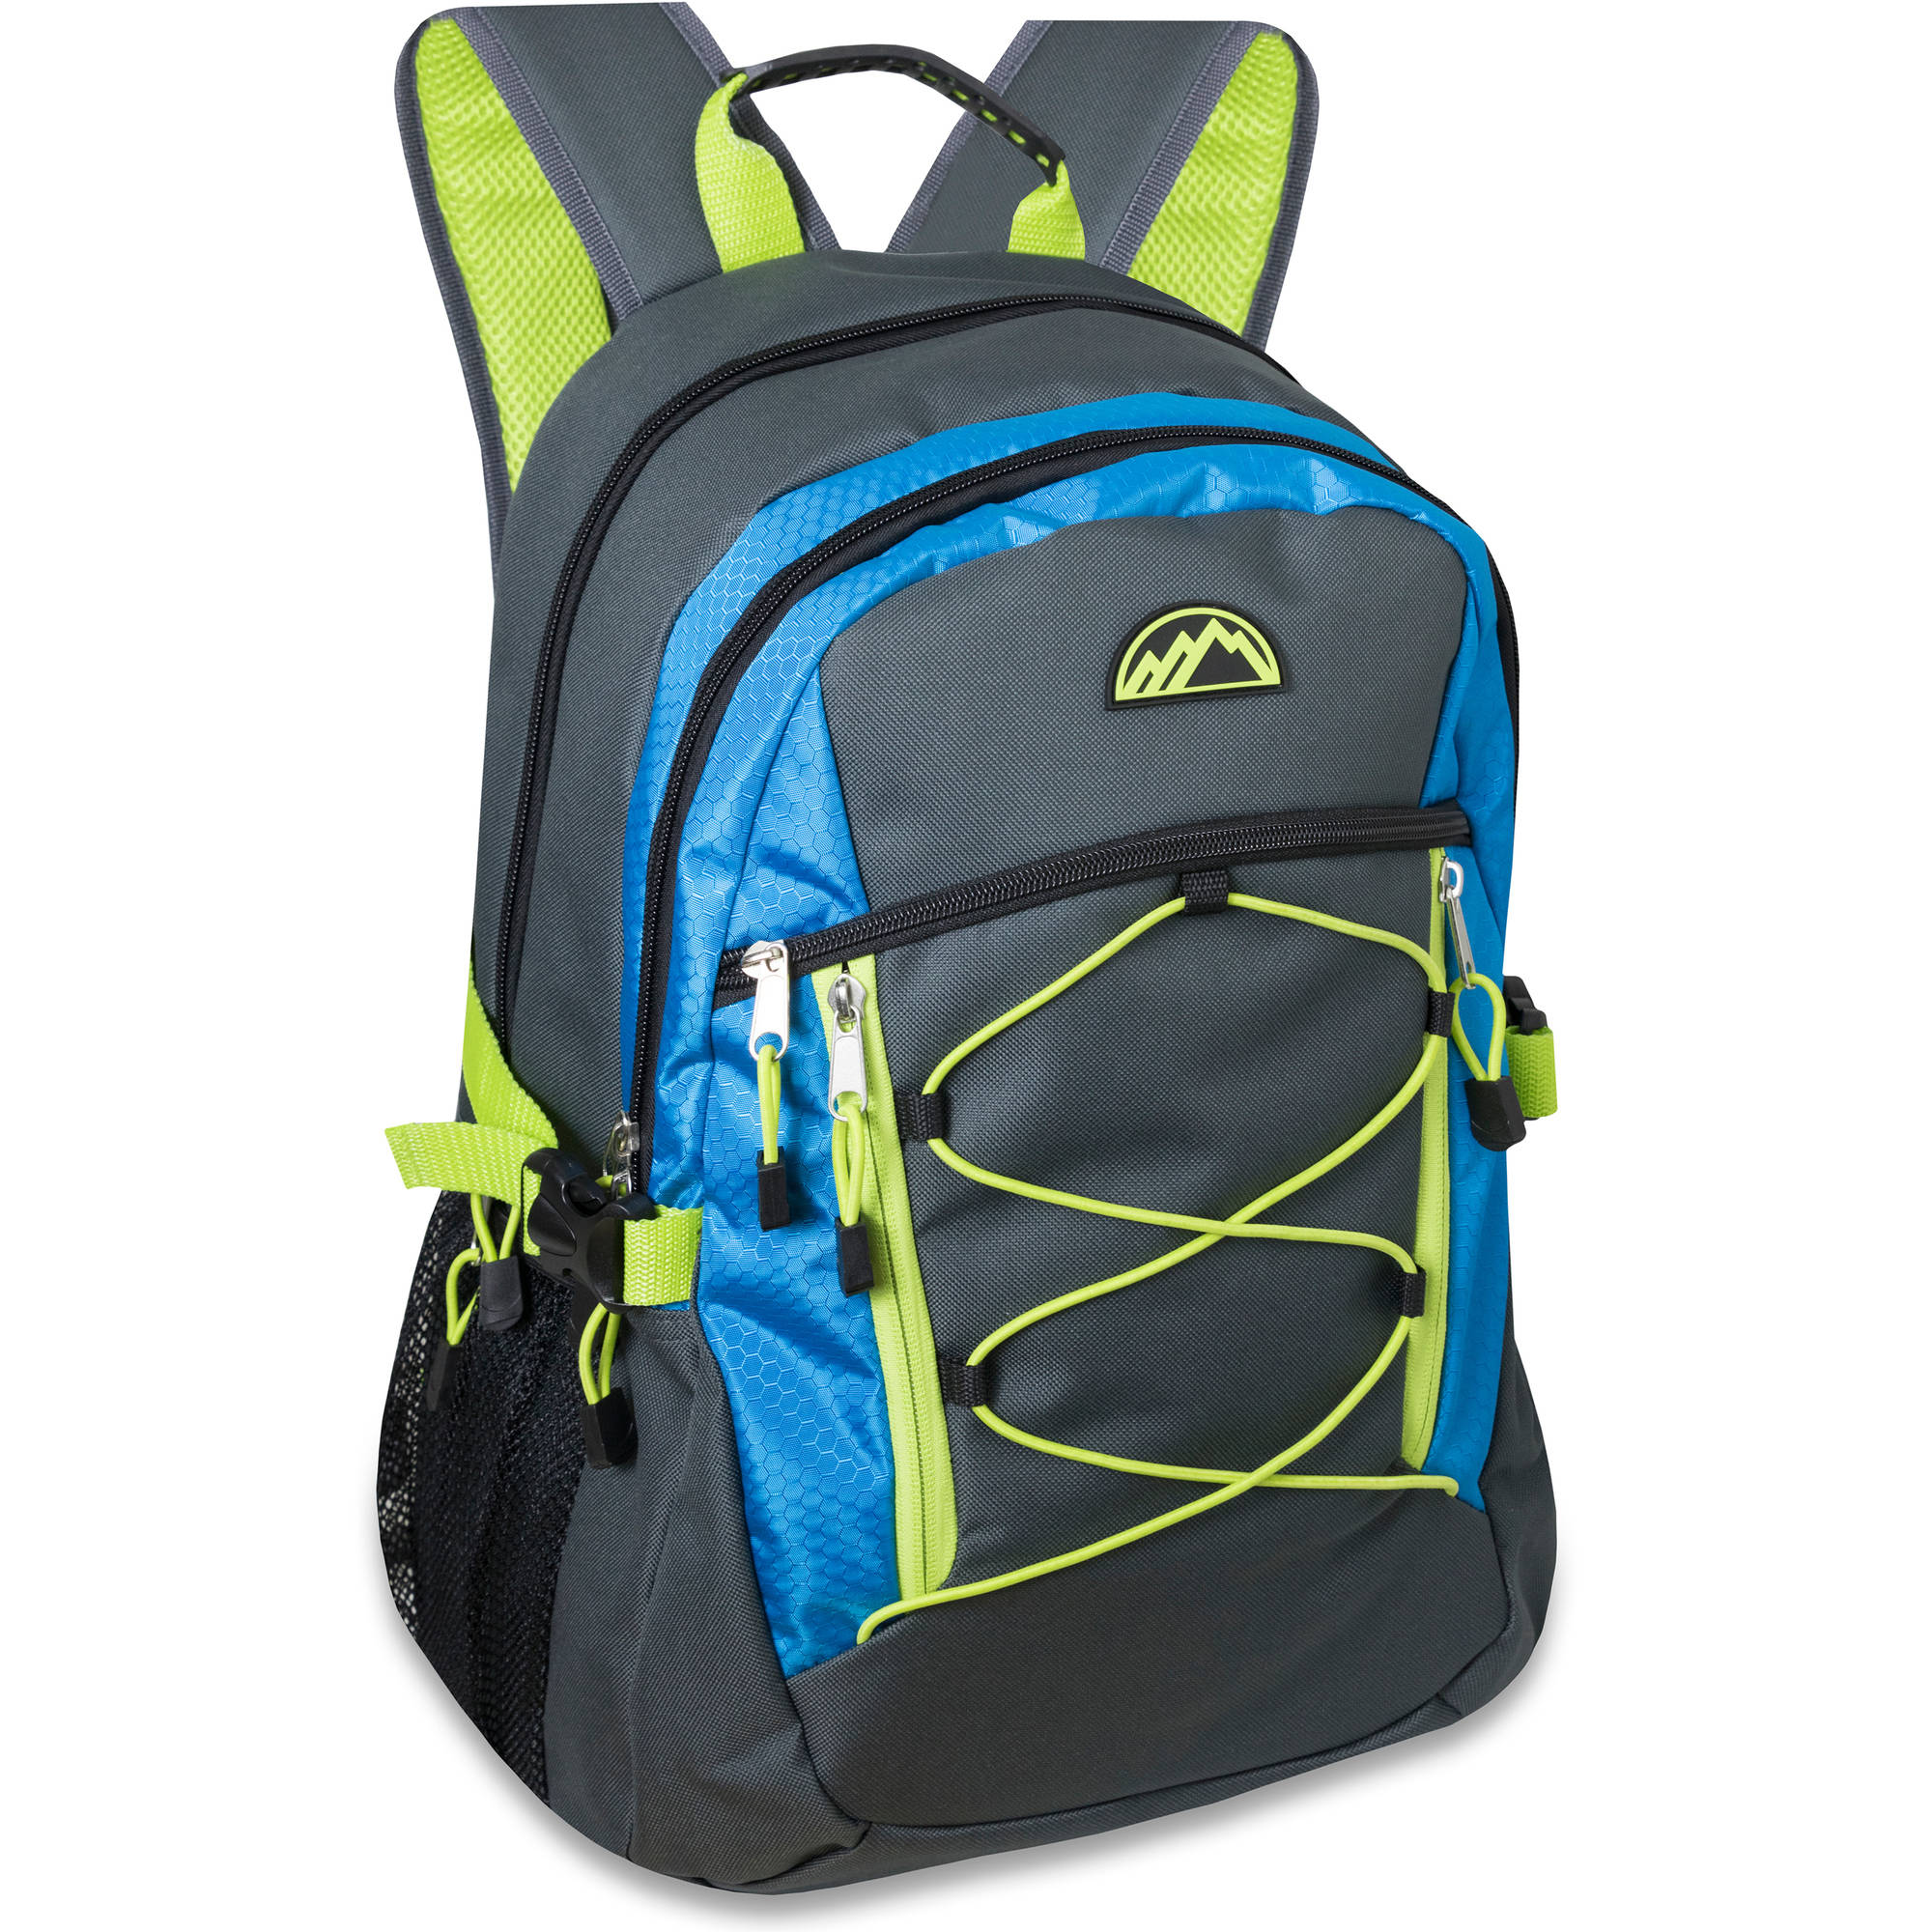 Mountain Edge 19 Inch Laptop/Tablet Backpack with Multi Section